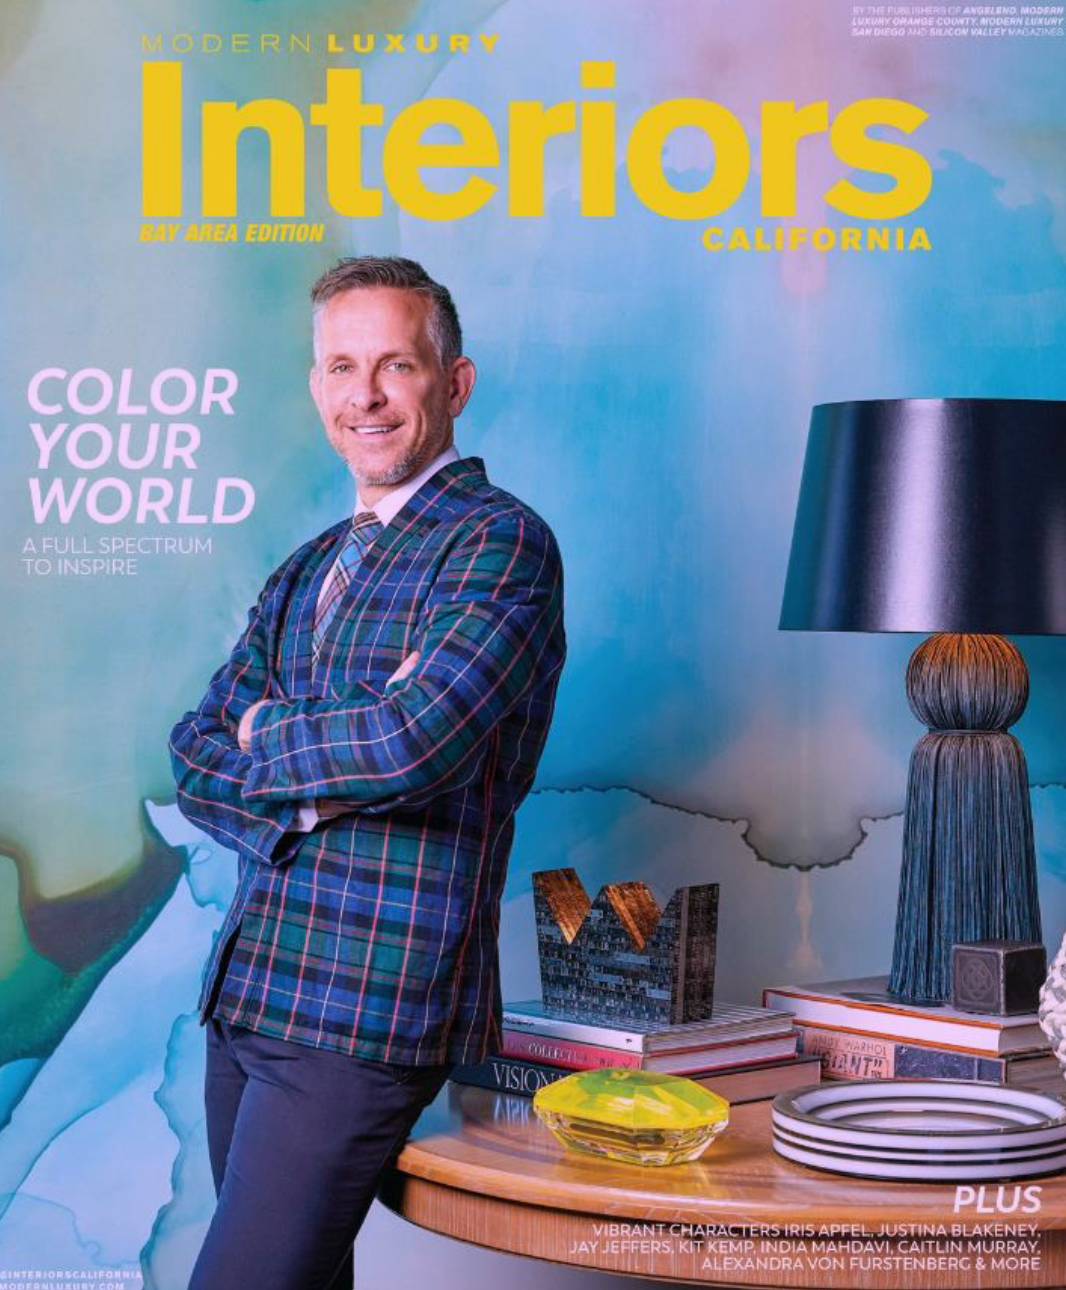 10/8/19 - Jay Jeffers Book Signing | 11am - 1pmIllustrated talk and book signing with San Francisco designer Jay Jeffers, known for his bold and polished interiors. He owns one of the coolest design stores in San Francisco, JayJeffers – The Store, filled with bespoke furniture and objects from his travels.Decorations: Elle Decor A List, published in top design magazines.Book: Jay Jeffers: Be Bold, Bespoke Modern Interiors (Gibbs-Smith, October 2018)Collabs: Arteriors, and architectural hardware for Accurate Lock & hardware.Where: Christopher Martin Gallery, Dallas Design District, 1533 Dragon Street.